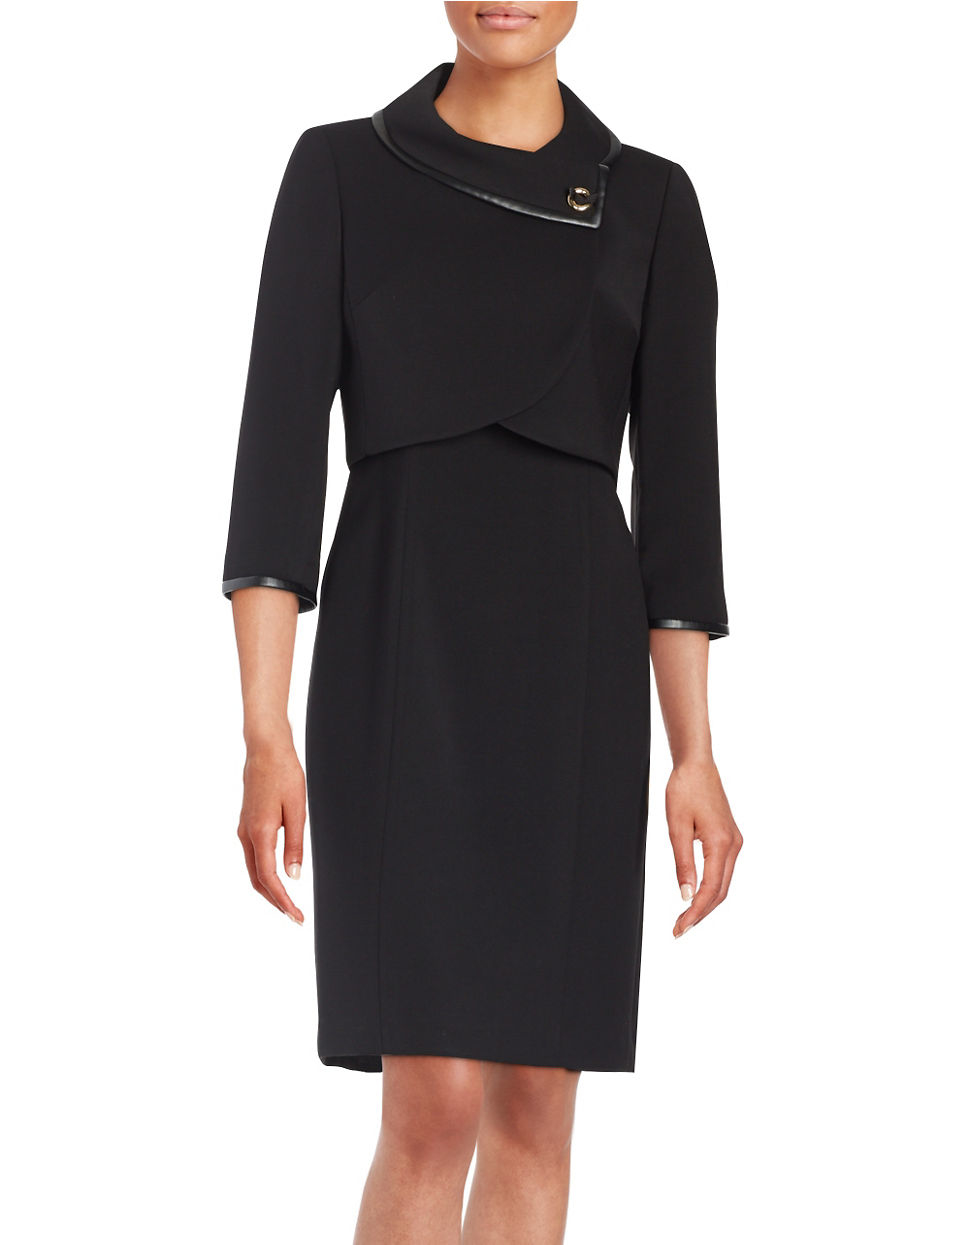 Tahari Petite Pencil Dress And Jacket Suit in Black | Lyst